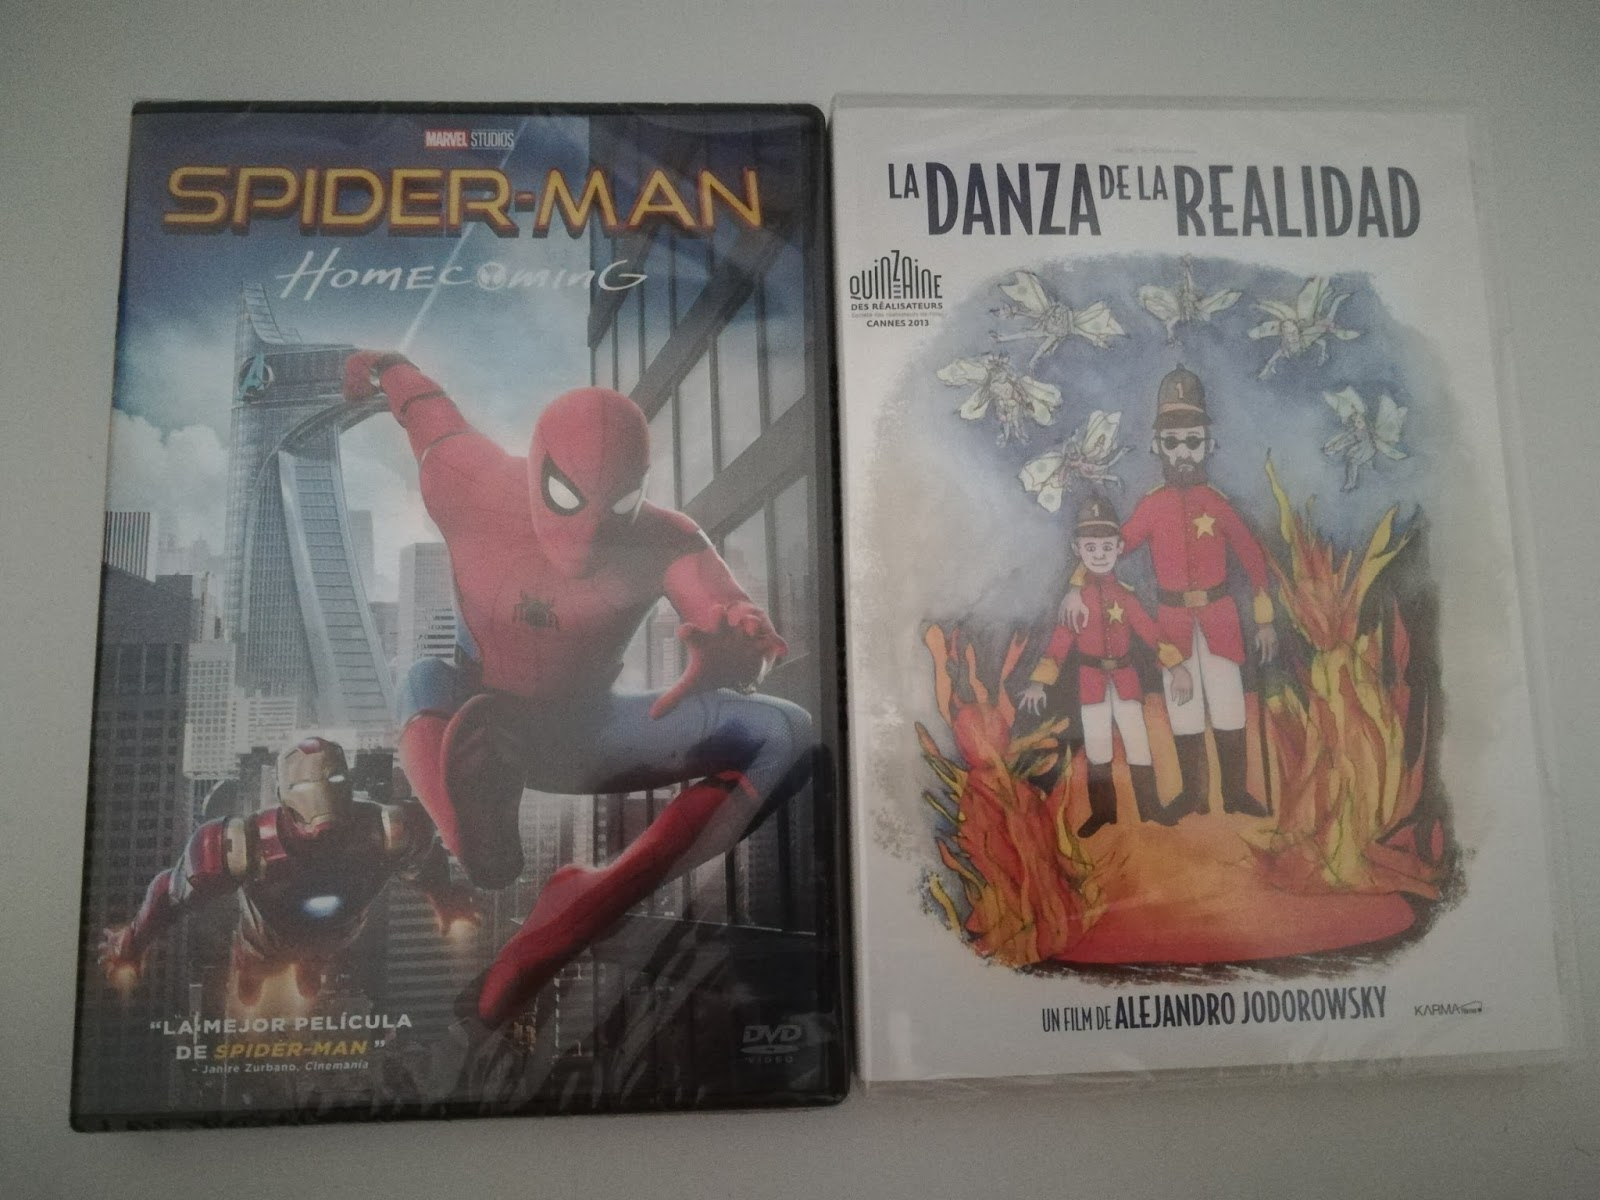 Sorteo DVD de 'Spiderman: Homecoming' y DVD de 'La danza de la realidad'